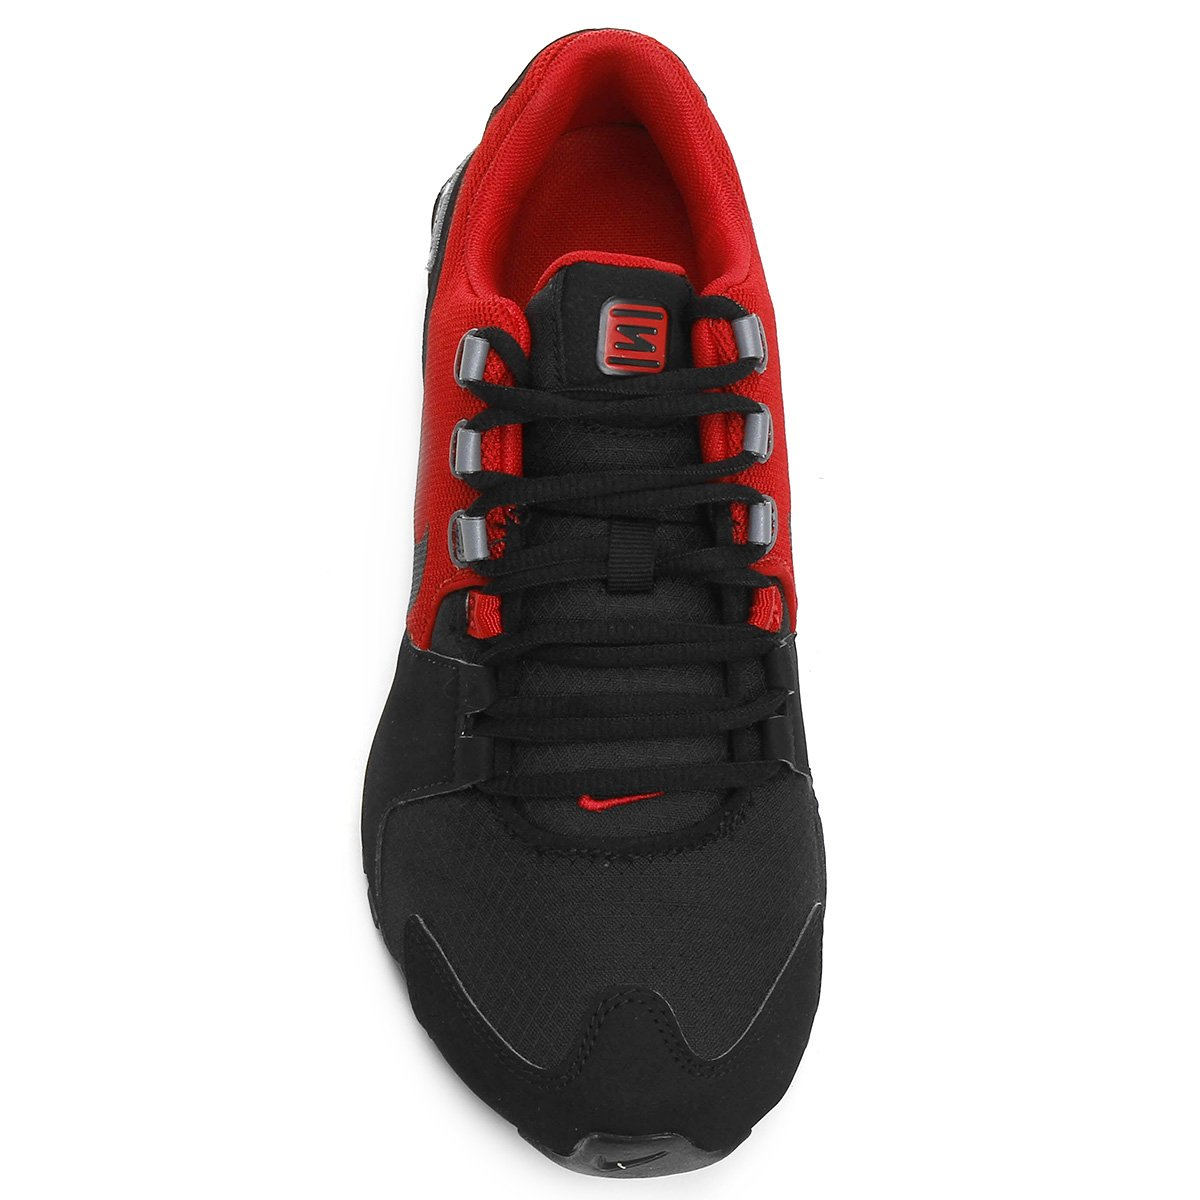 8b7caf5ae9 where to buy nike shox avenue preto e vermelho a18d4 a0657